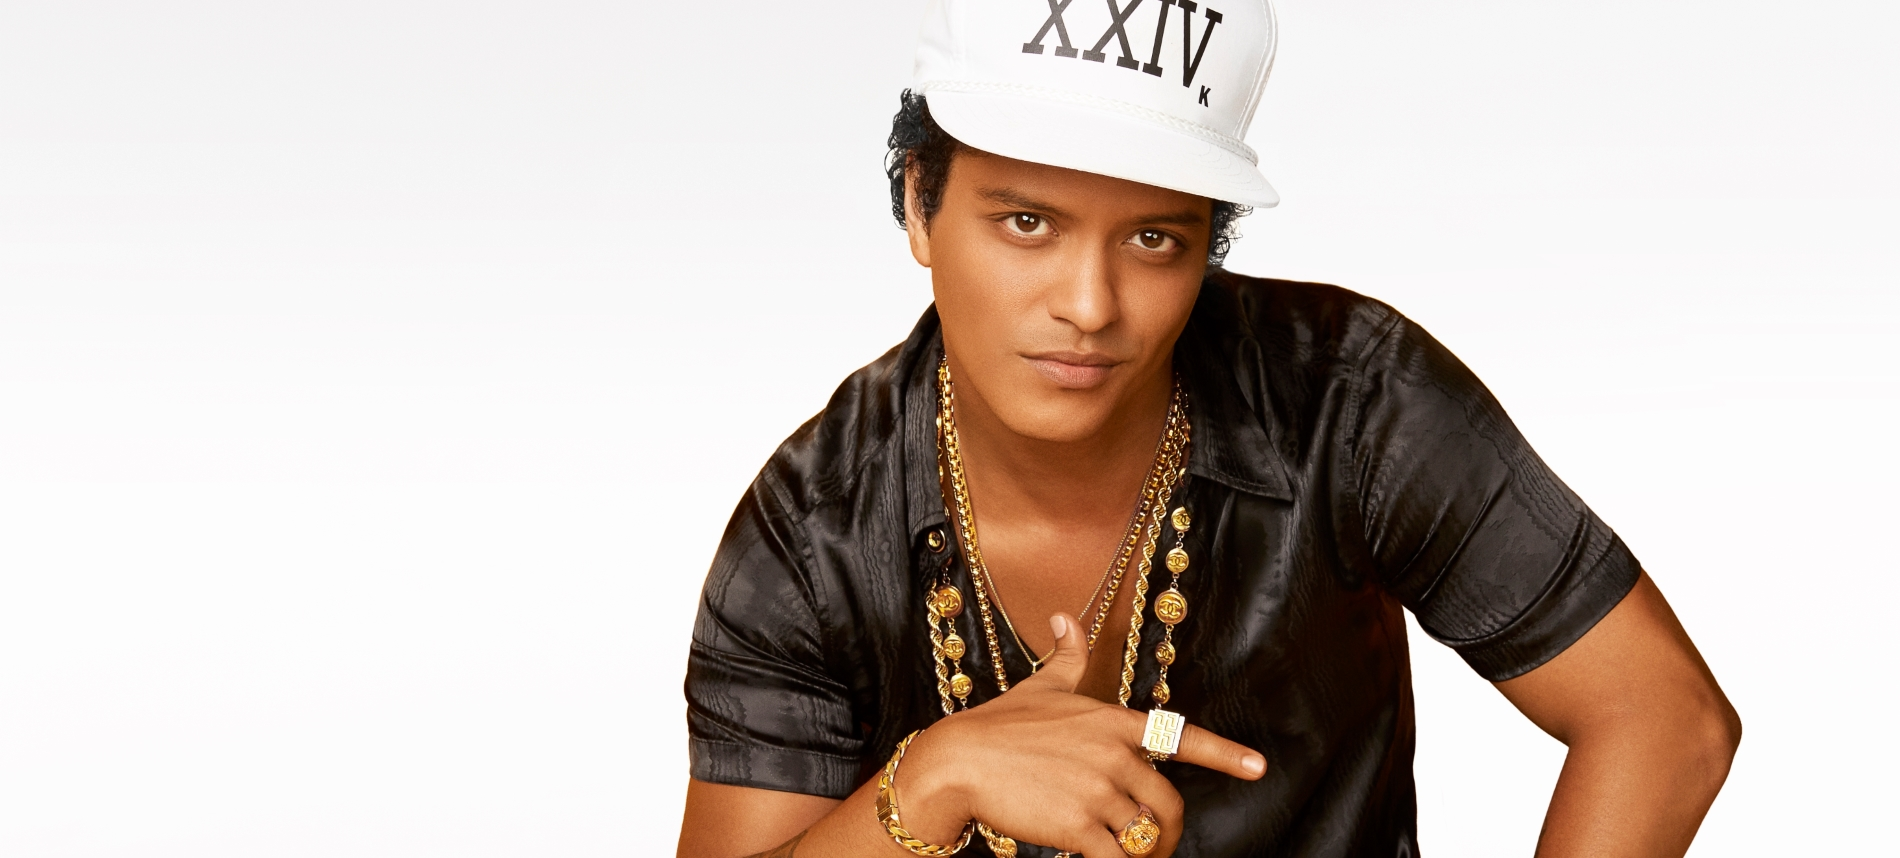 bruno mars on planet mars - photo #19